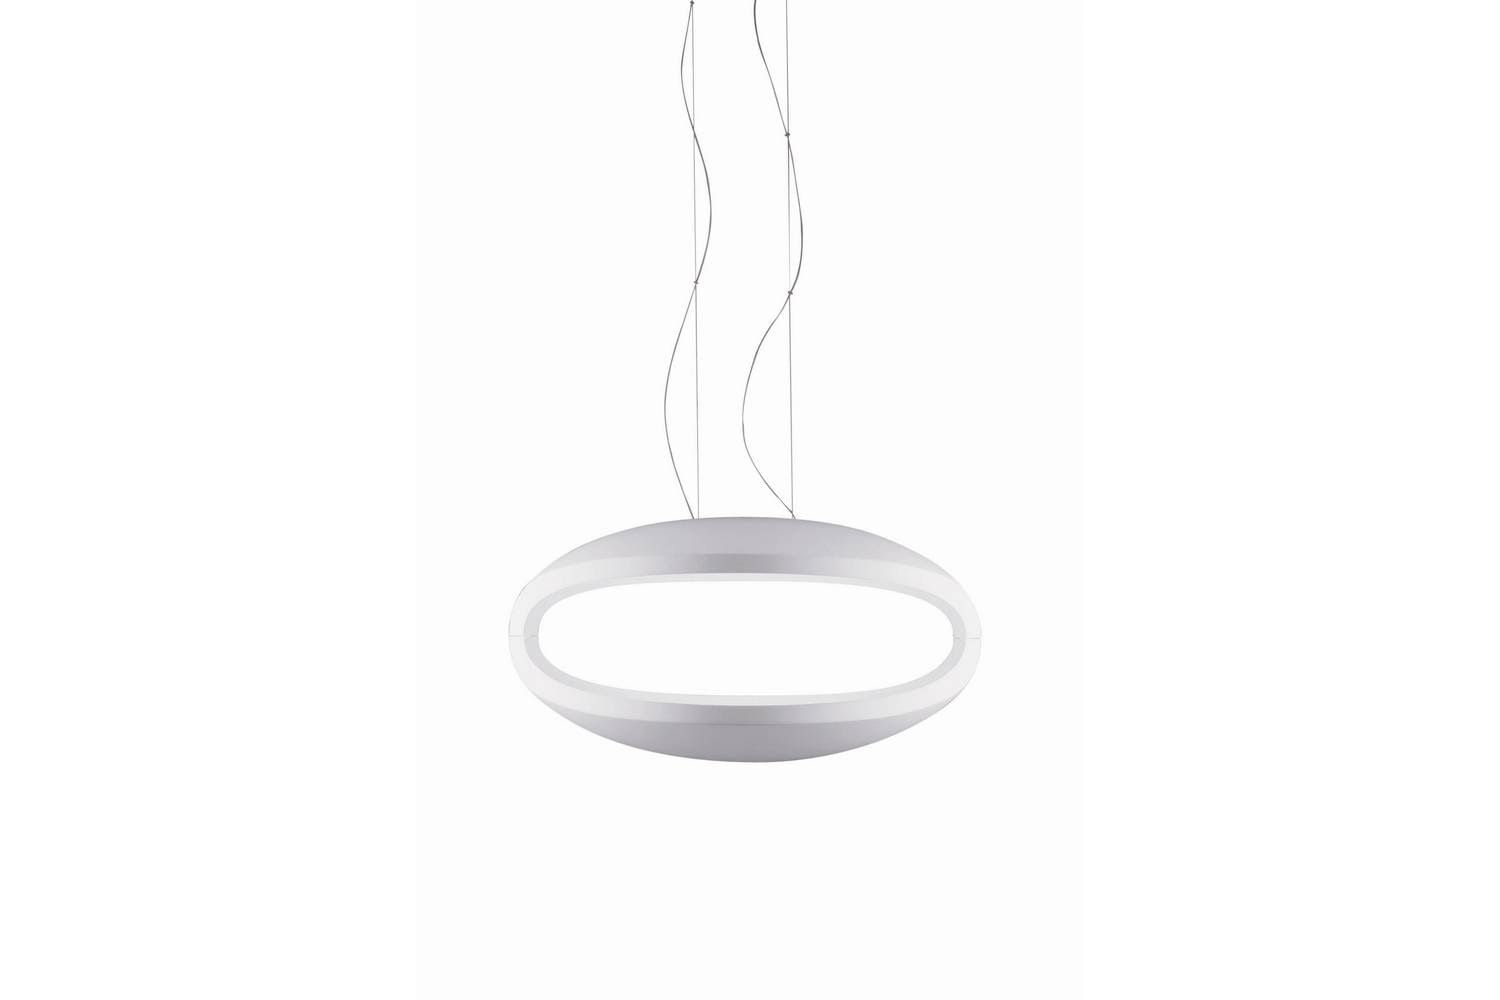 O-Space Suspension Lamp by Luca Nichetto & Gianpietro Gai for Foscarini